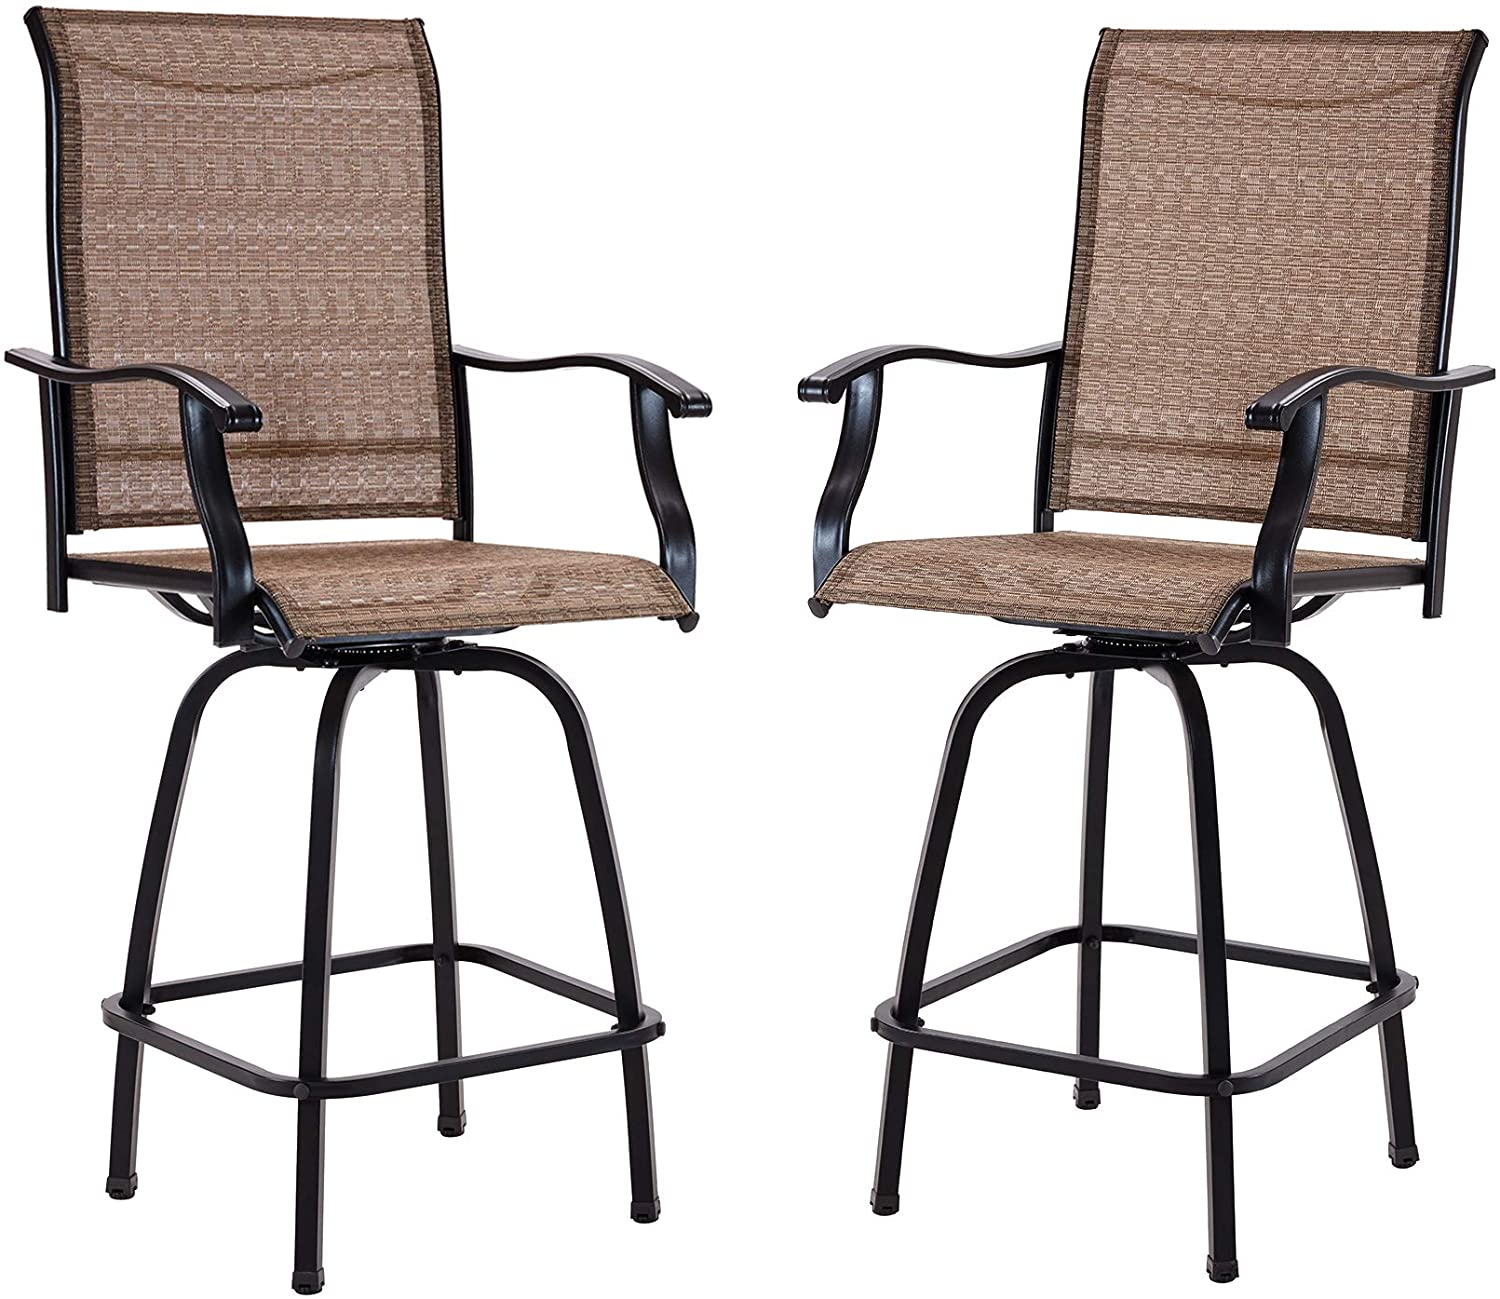 VICLLAX Swivel Manufacturer regenerated product Bar Stools Patio outlet Furnit Outdoor All-Weather Chair